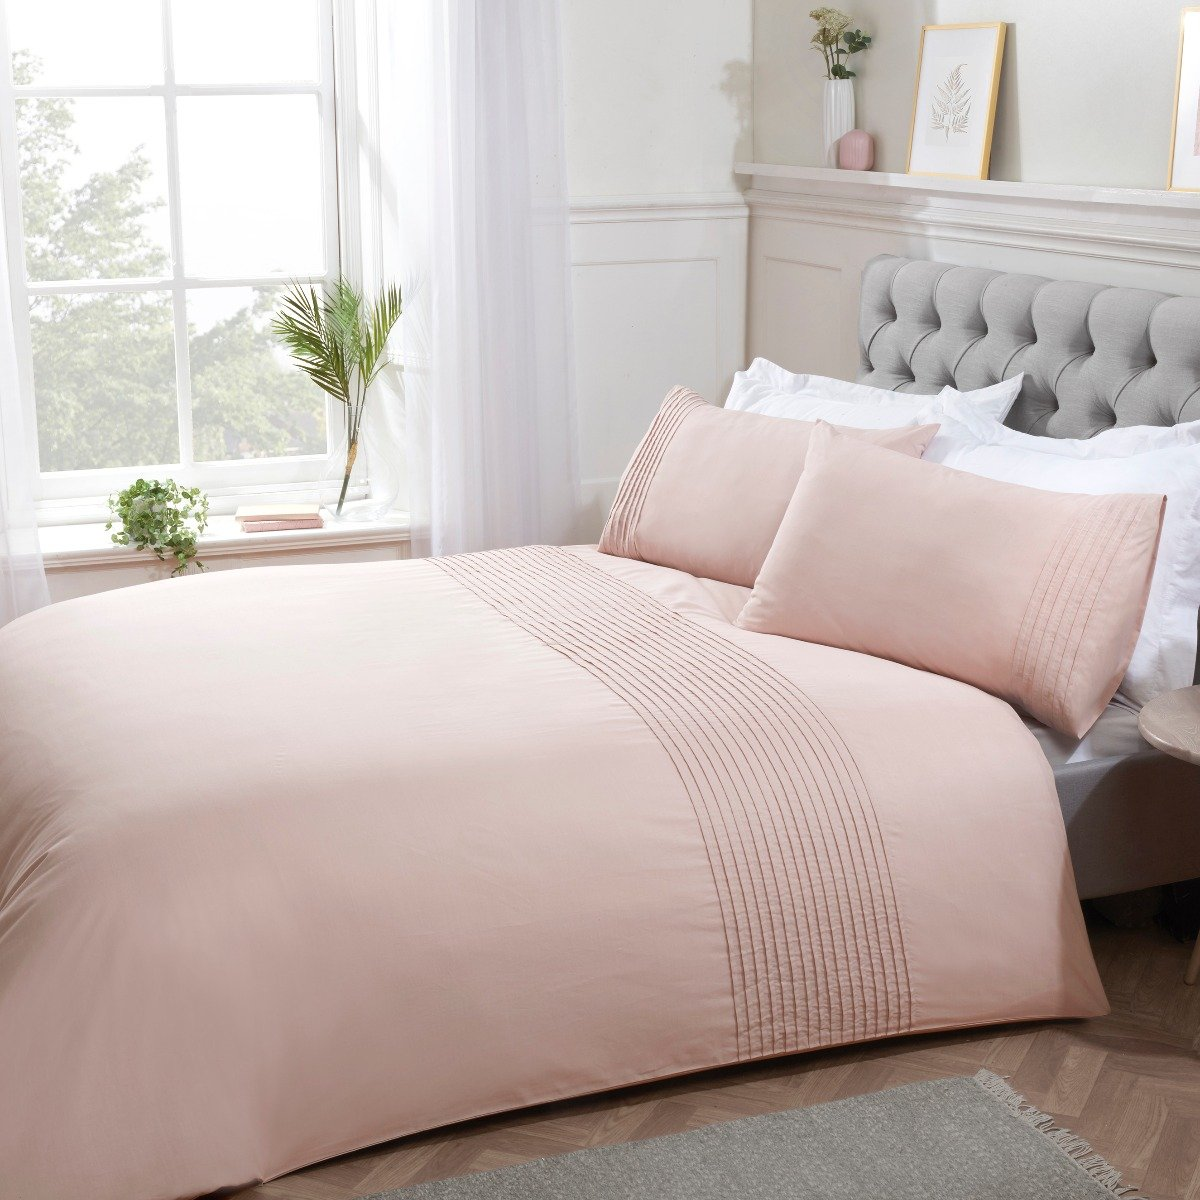 Pintuck Duvet Set Blush